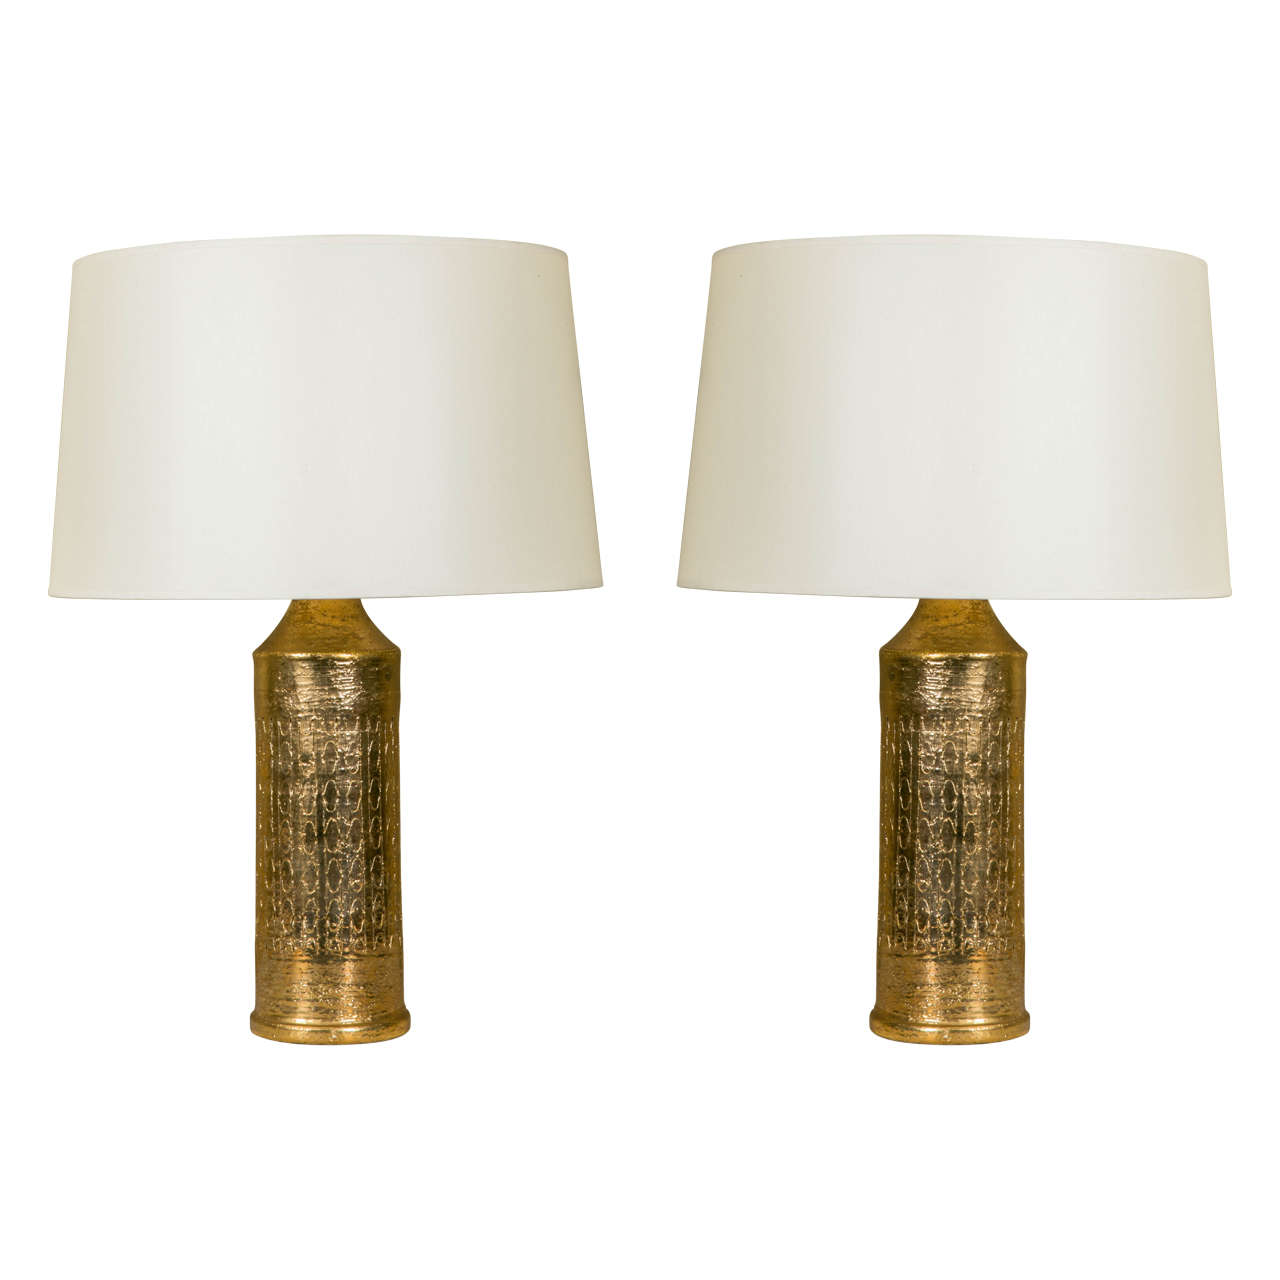 Pair Of Bergboms Gold Glazed Ceramic Table Lamps, Sweden, Circa 1960 1